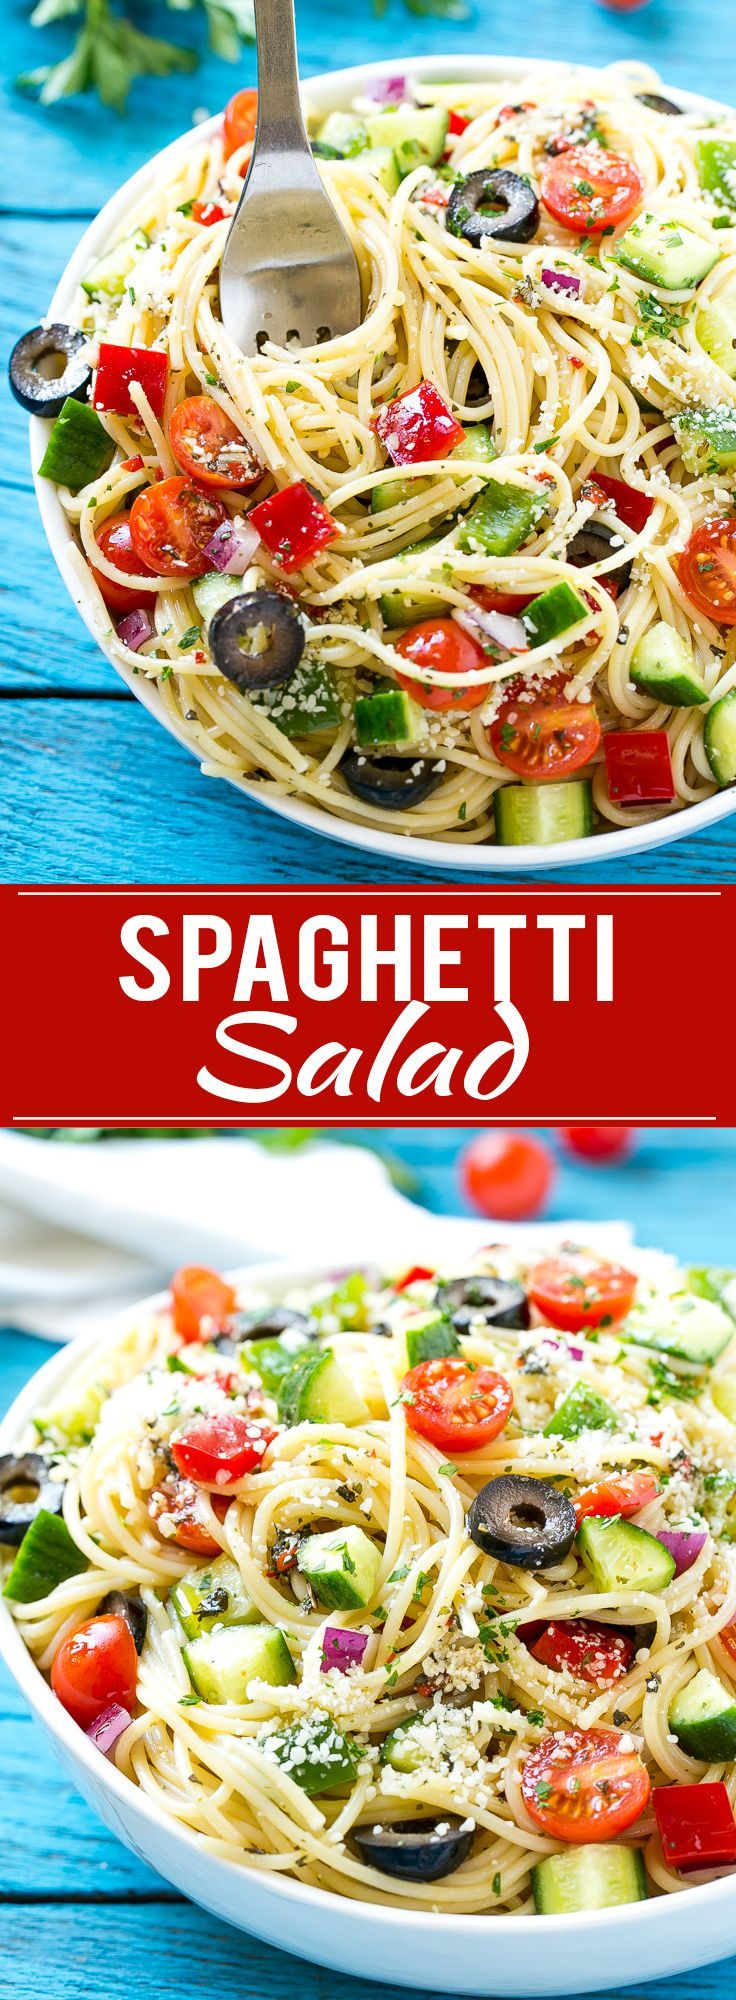 This recipe for spaghetti salad is a unique pasta salad full of crunchy vegetables and parmesan cheese, all tossed together in a homemade zesty Italian dressing. The perfect dish to feed a crowd when you're entertaining! #ecover #ad